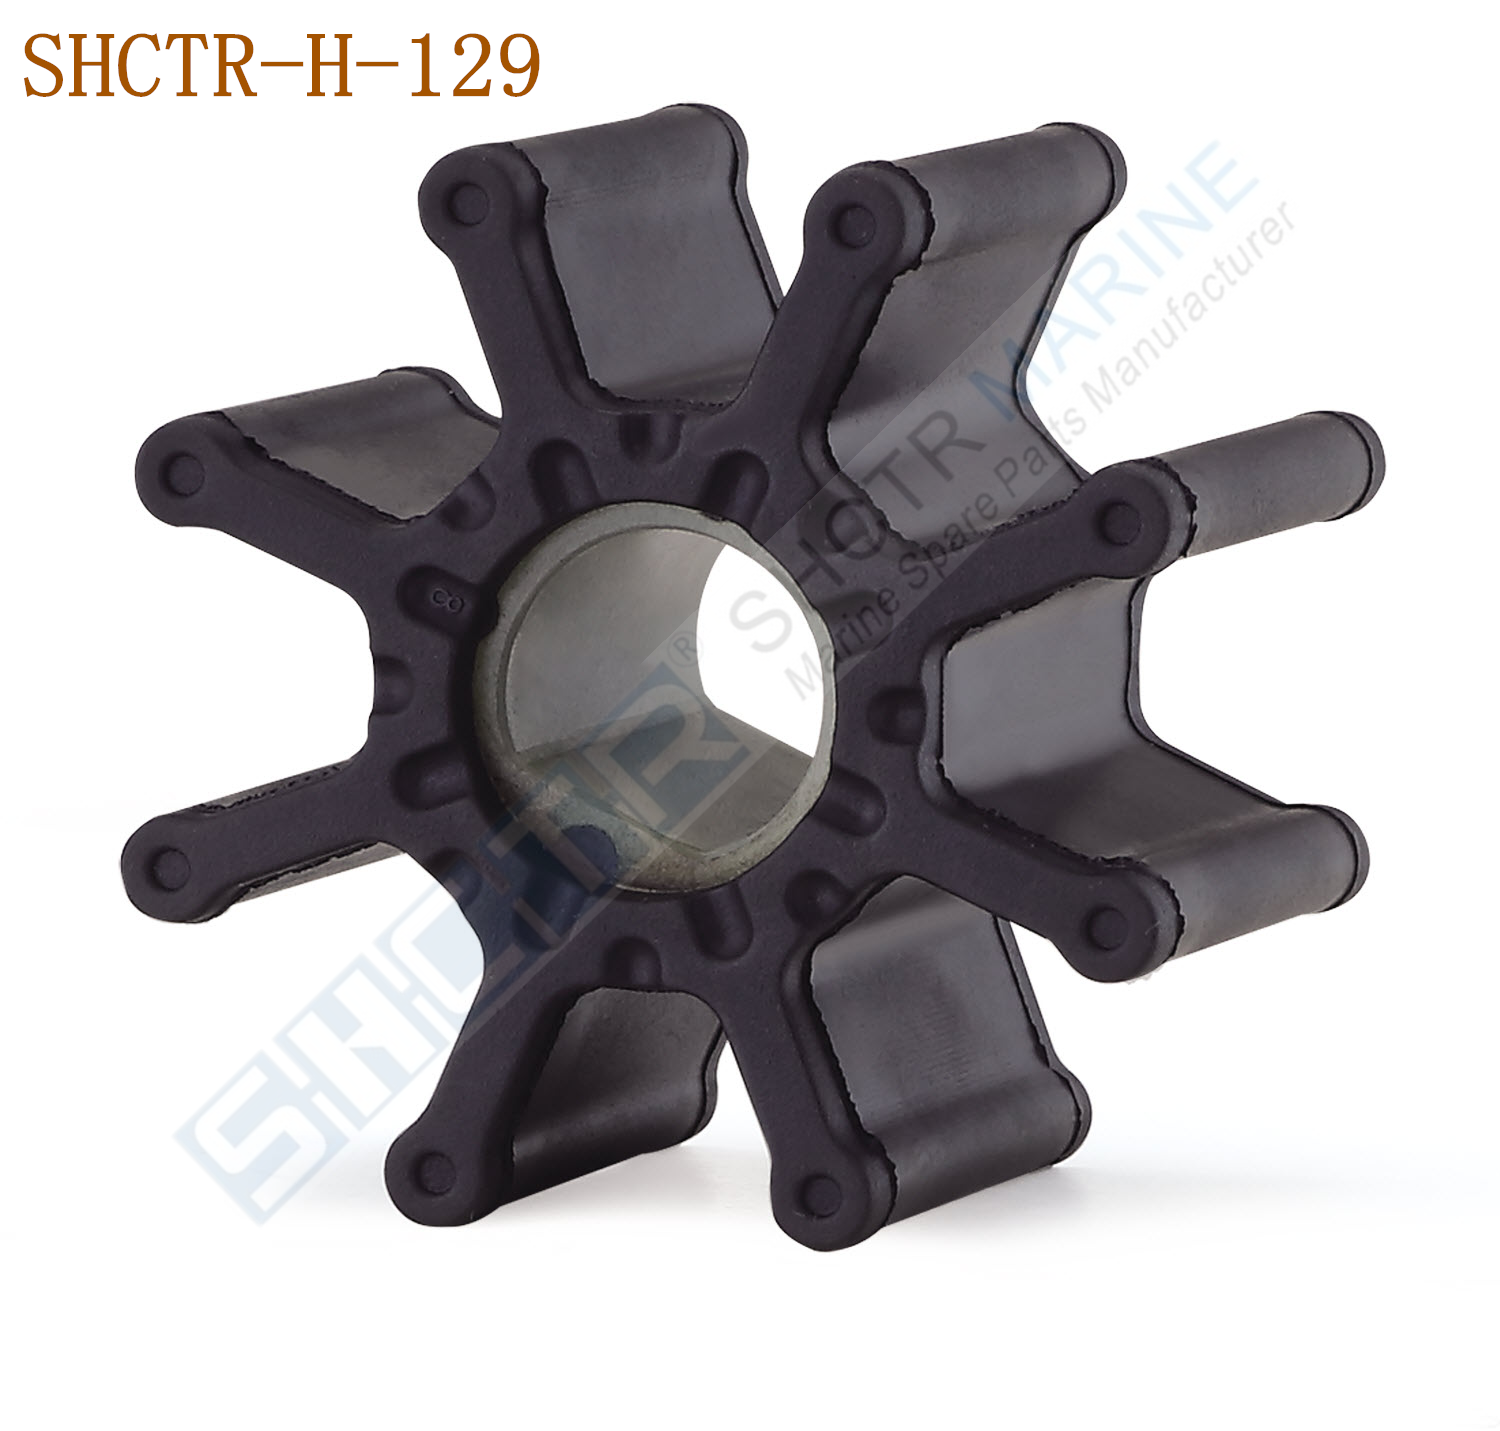 SHCTR Flexible Impeller For OEM 47-59362T1,Jabsco 17954-0001,Mercruiser-Bravo I II III,CEF 500214 500109,Mallory 9-45375